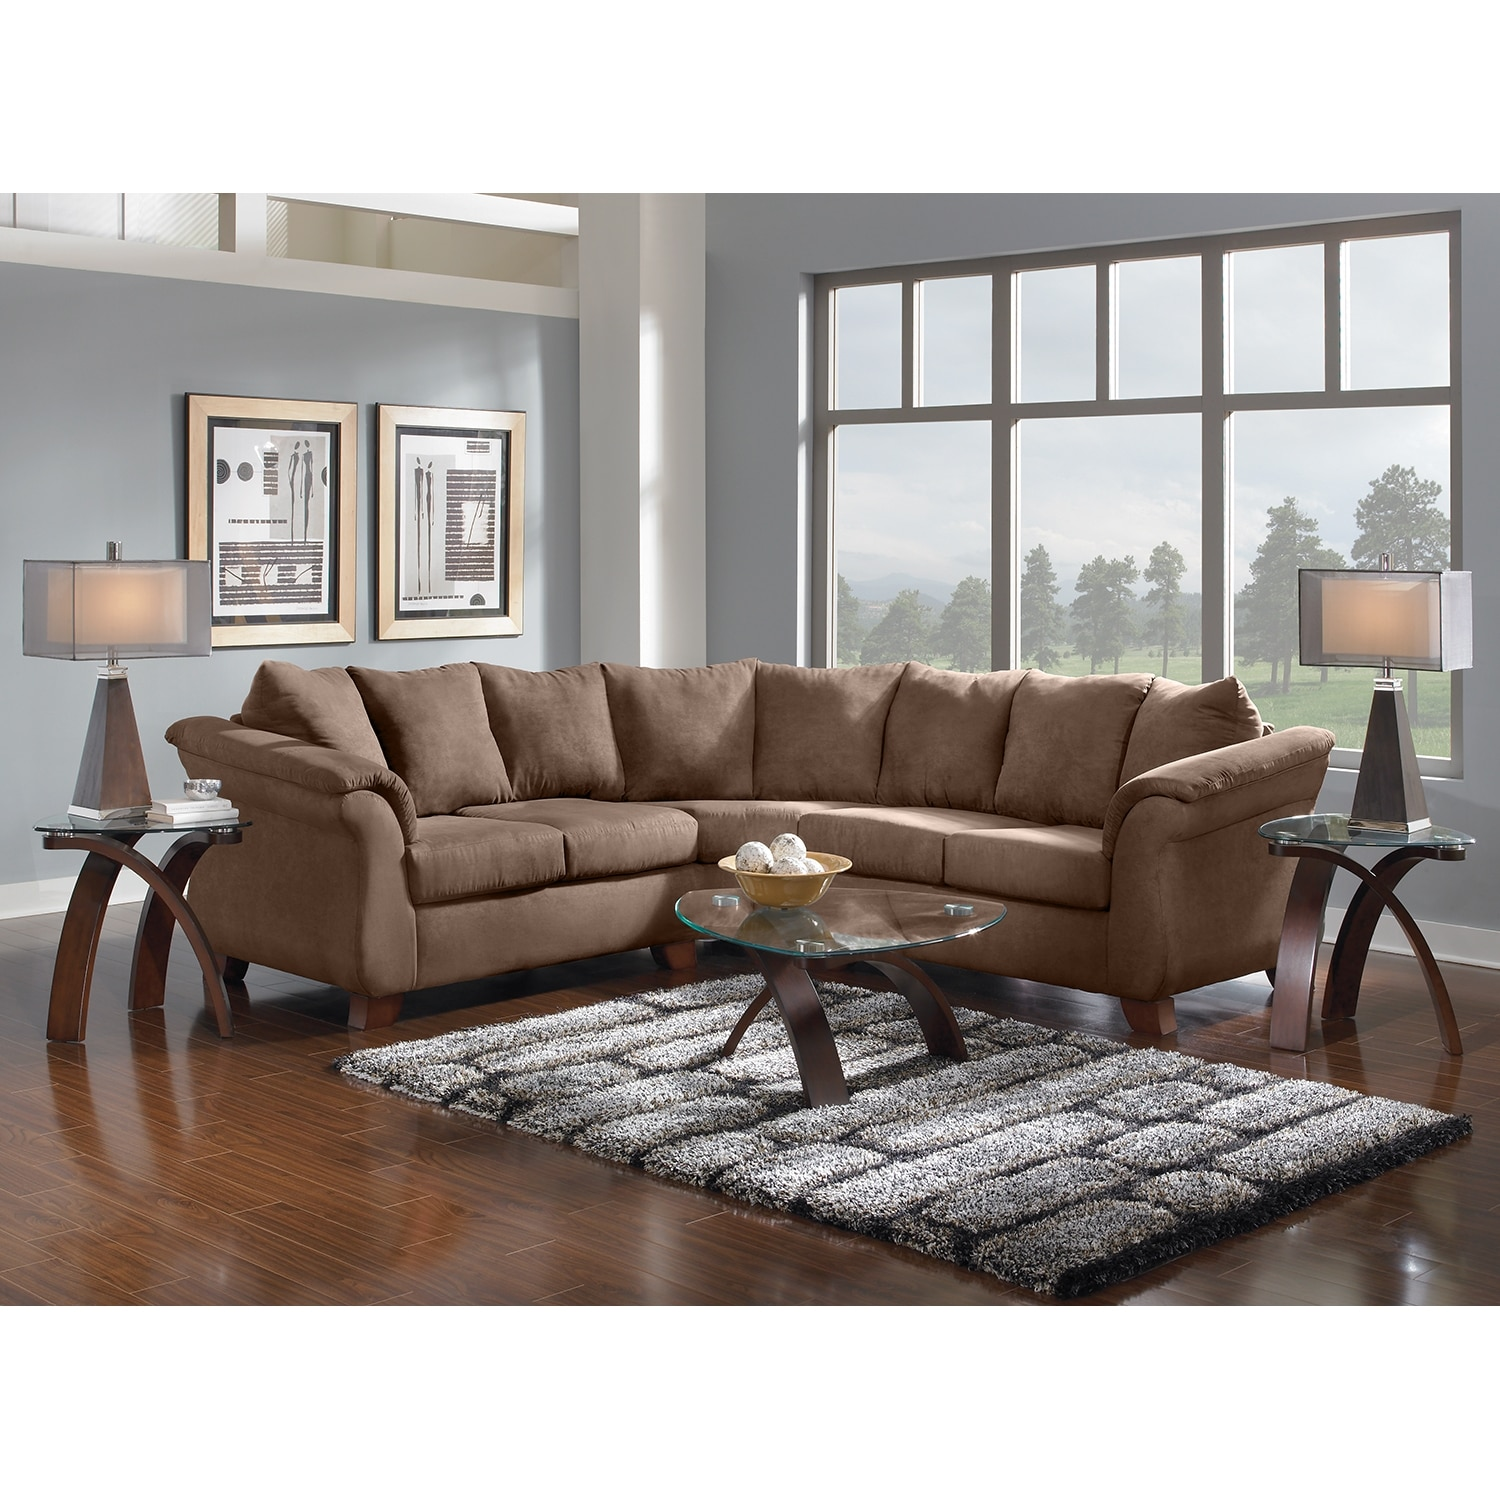 Adrian taupe ii 2 pc sectional value city furniture for Room with furniture